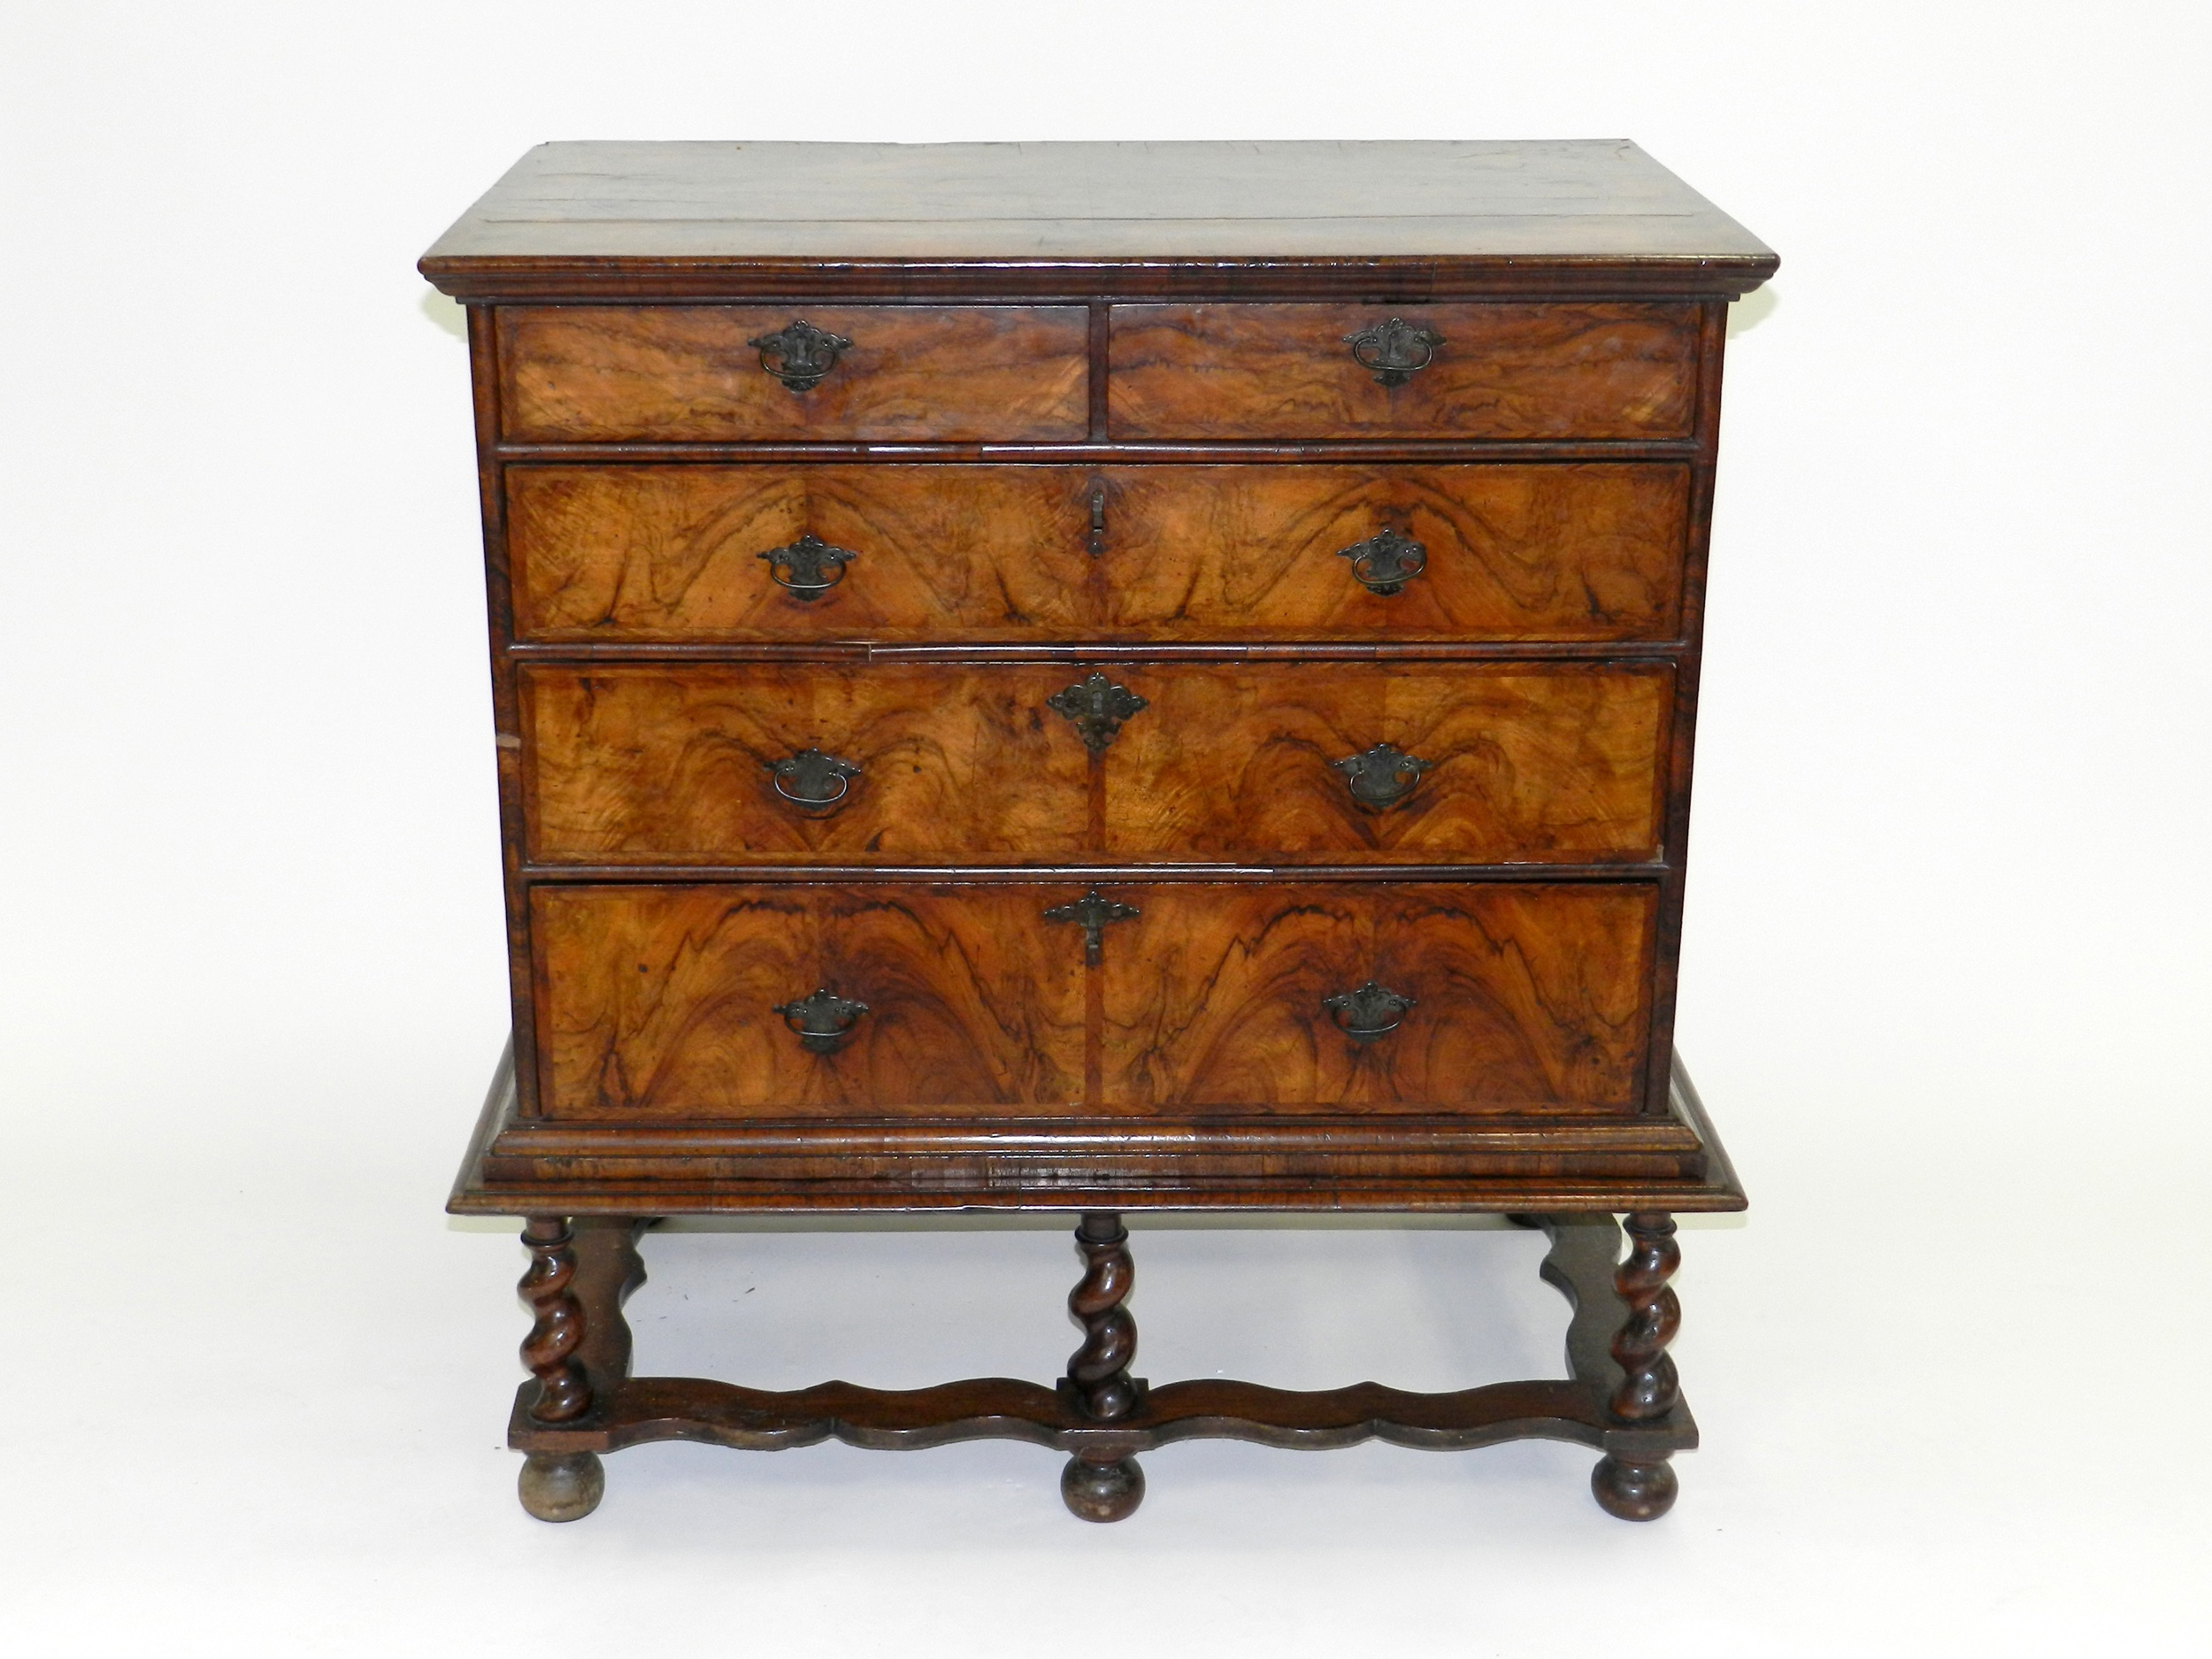 George I walnut chest on stand